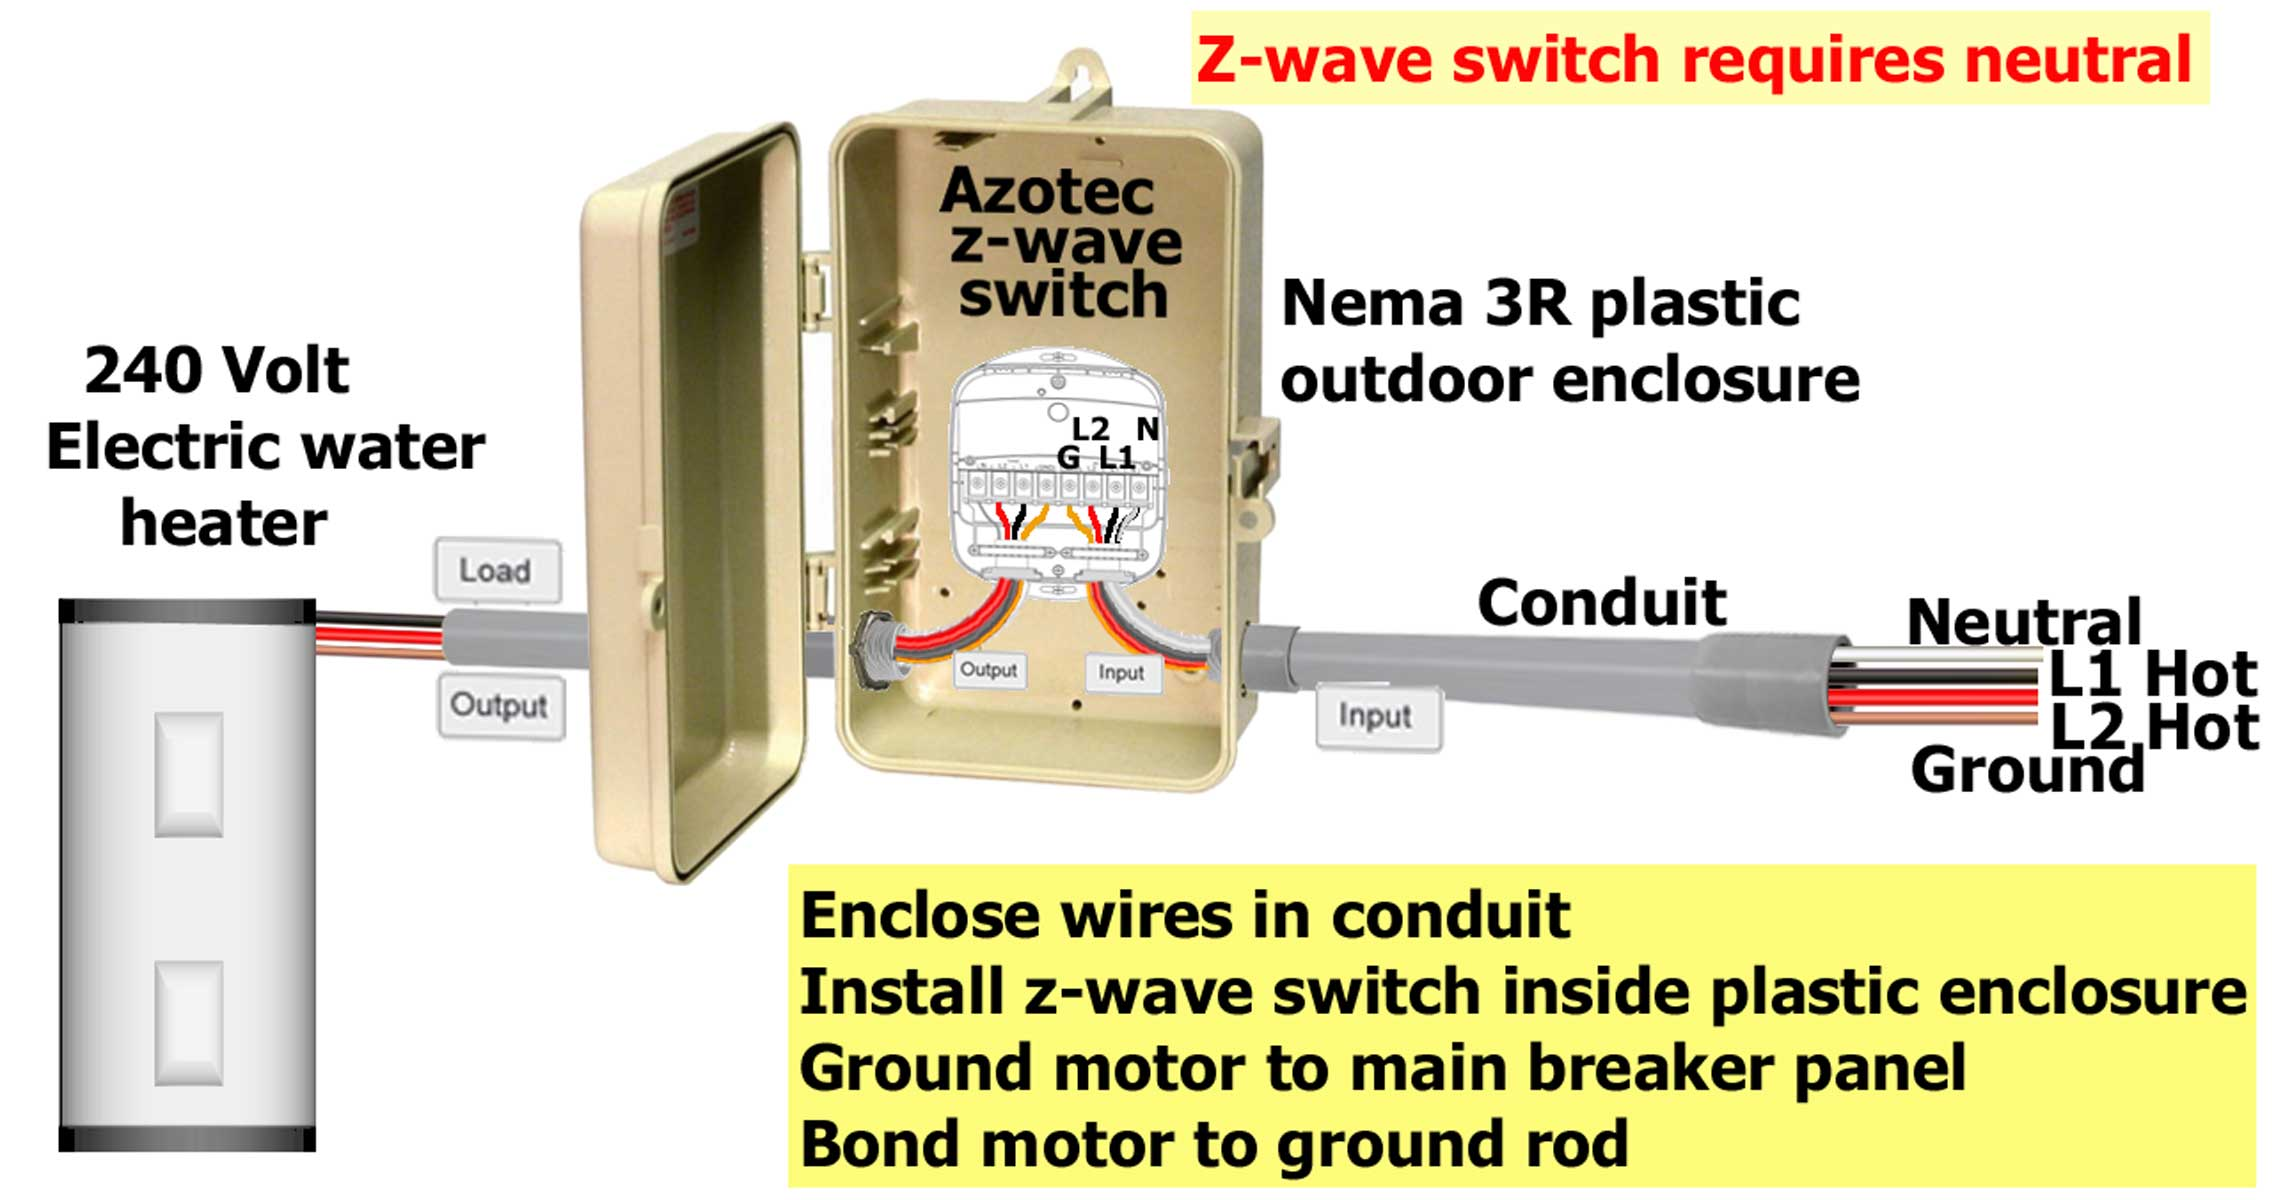 3 Phase Water Heater Element Wiring Diagram Library Immersion Installation Instructions How To Wire Aeon Labs Aeotec Z Wave Energy Smart Switch Rh Waterheatertimer Org